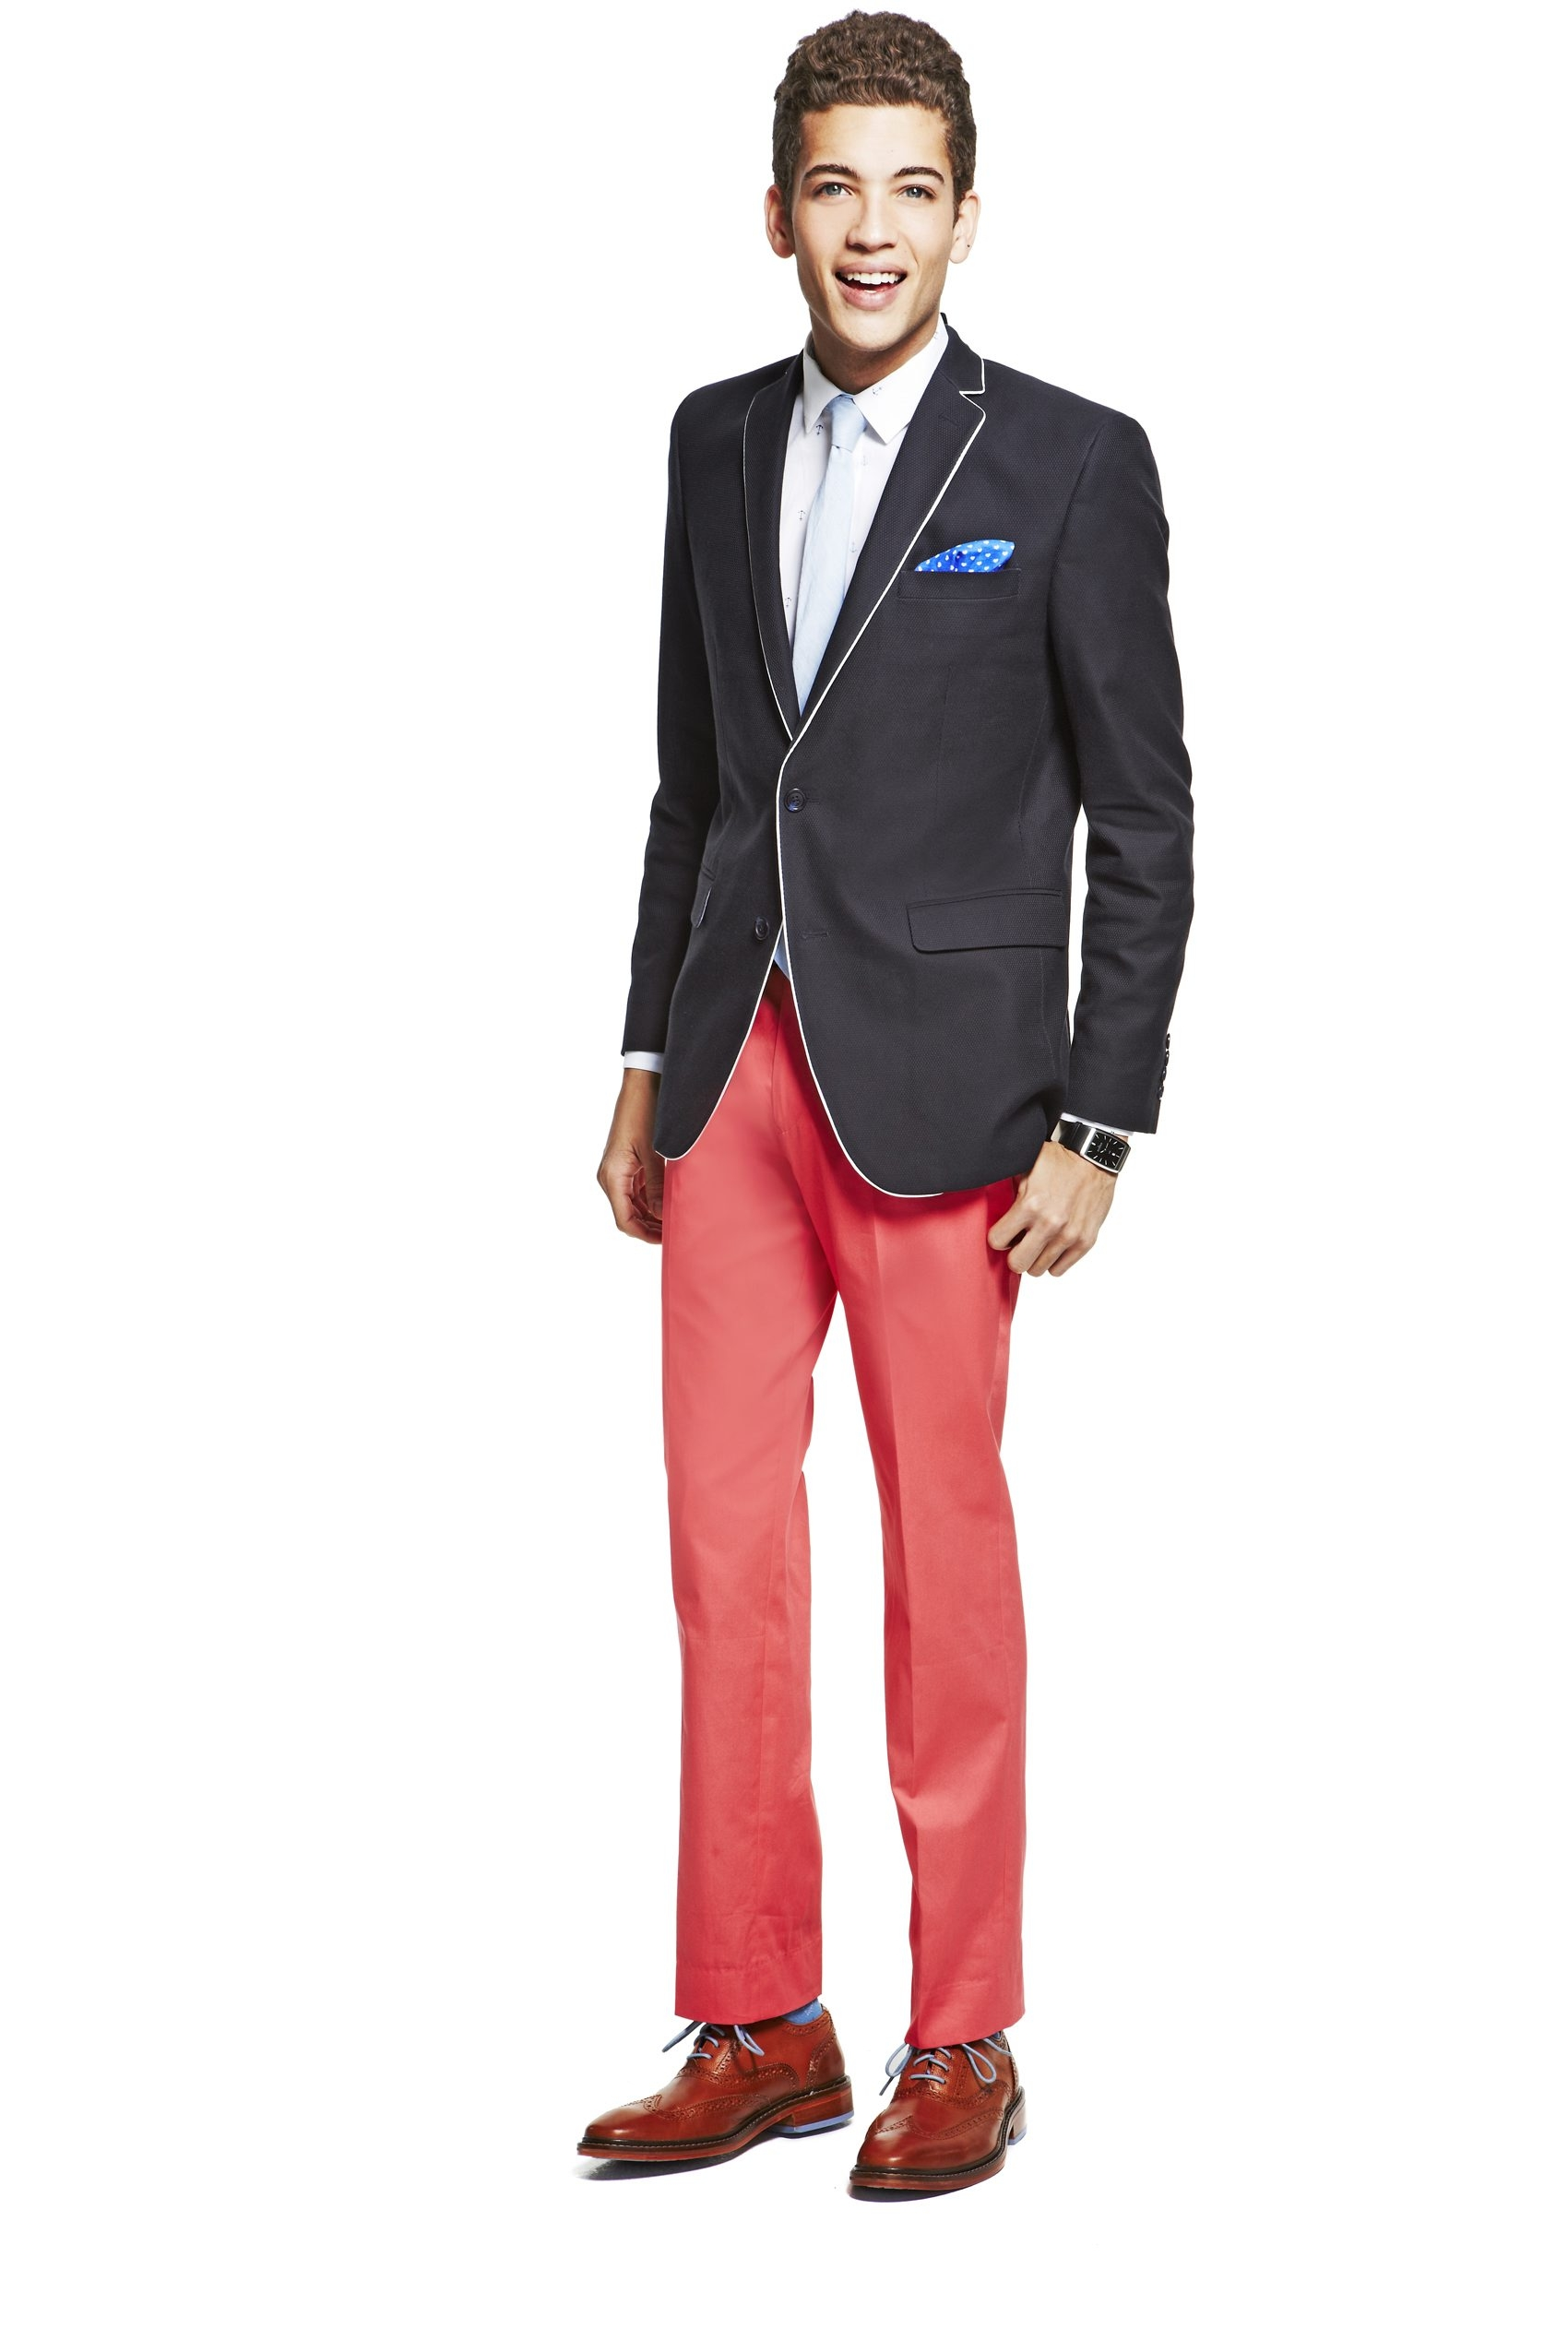 'Statement' sport coats call for sharper pants. This look is from Macy's.